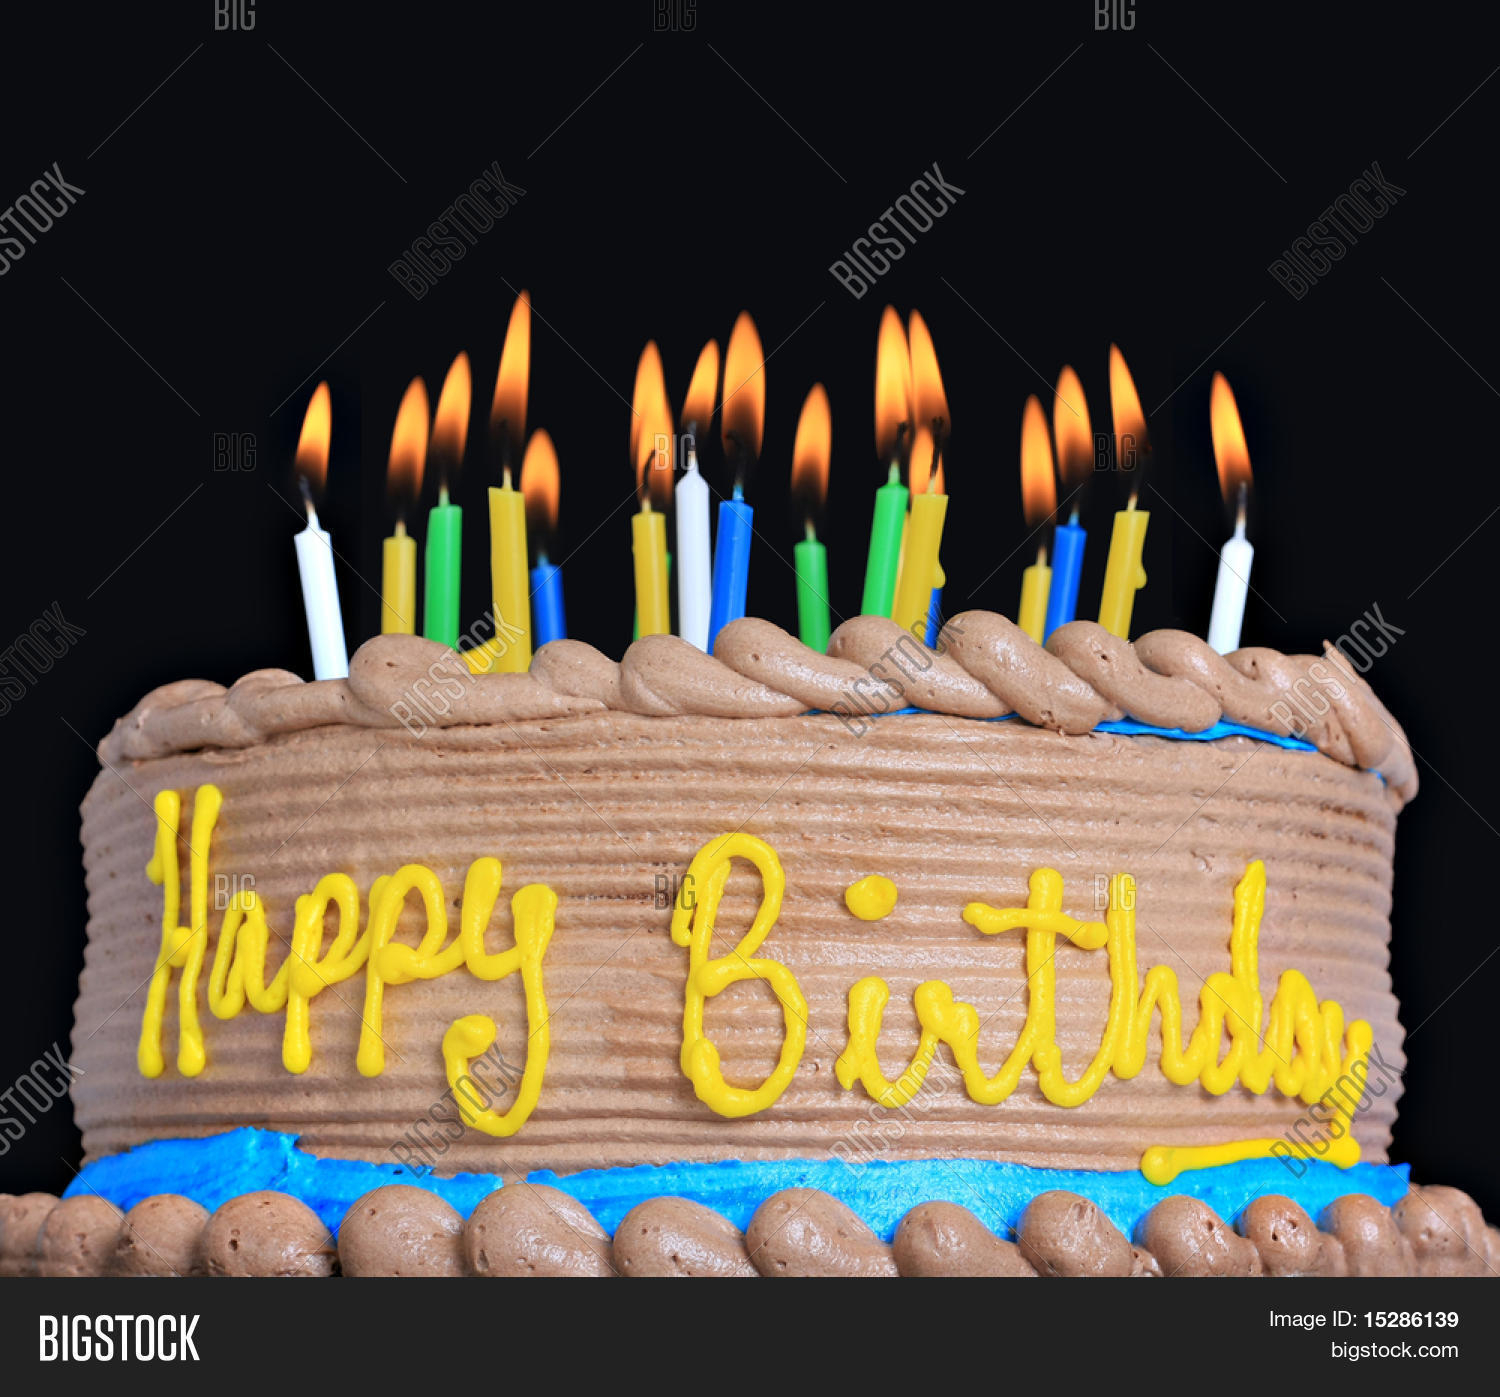 Birthday Cake With Lots Of Candles Happy Birthday Cake Image Photo Free Trial Bigstock